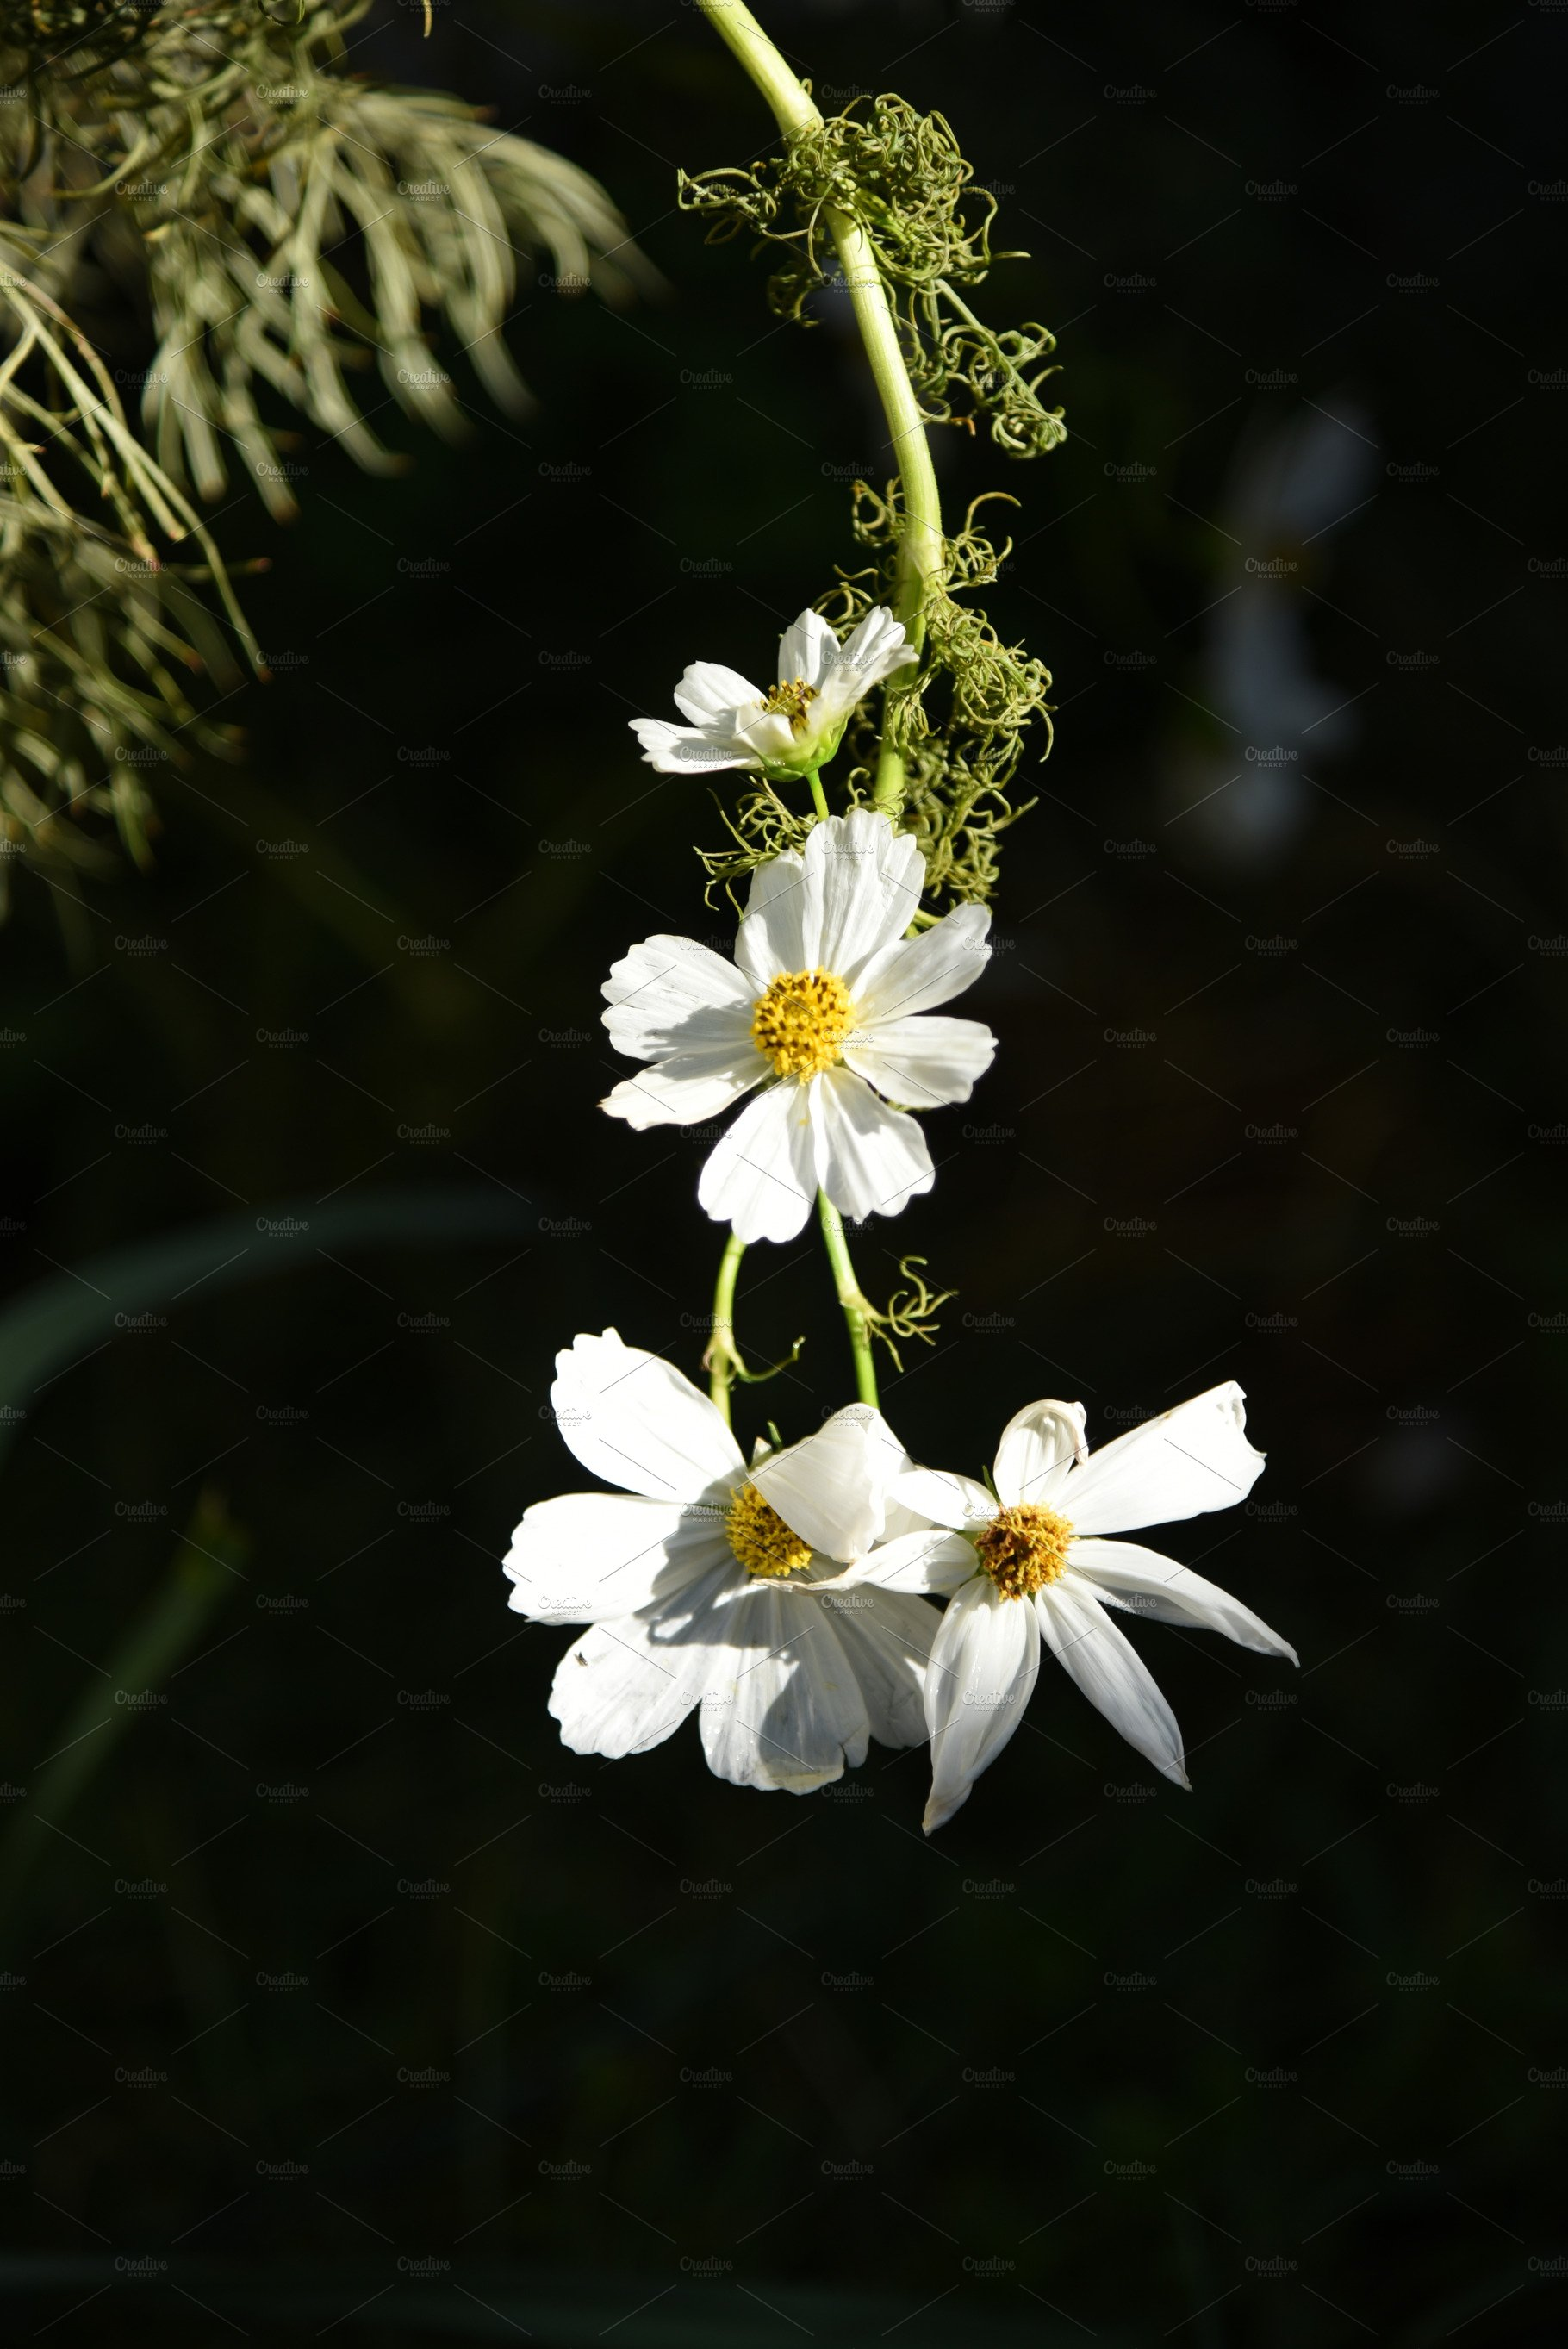 White Cosmos Flowers Hanging Nature Photos Creative Market